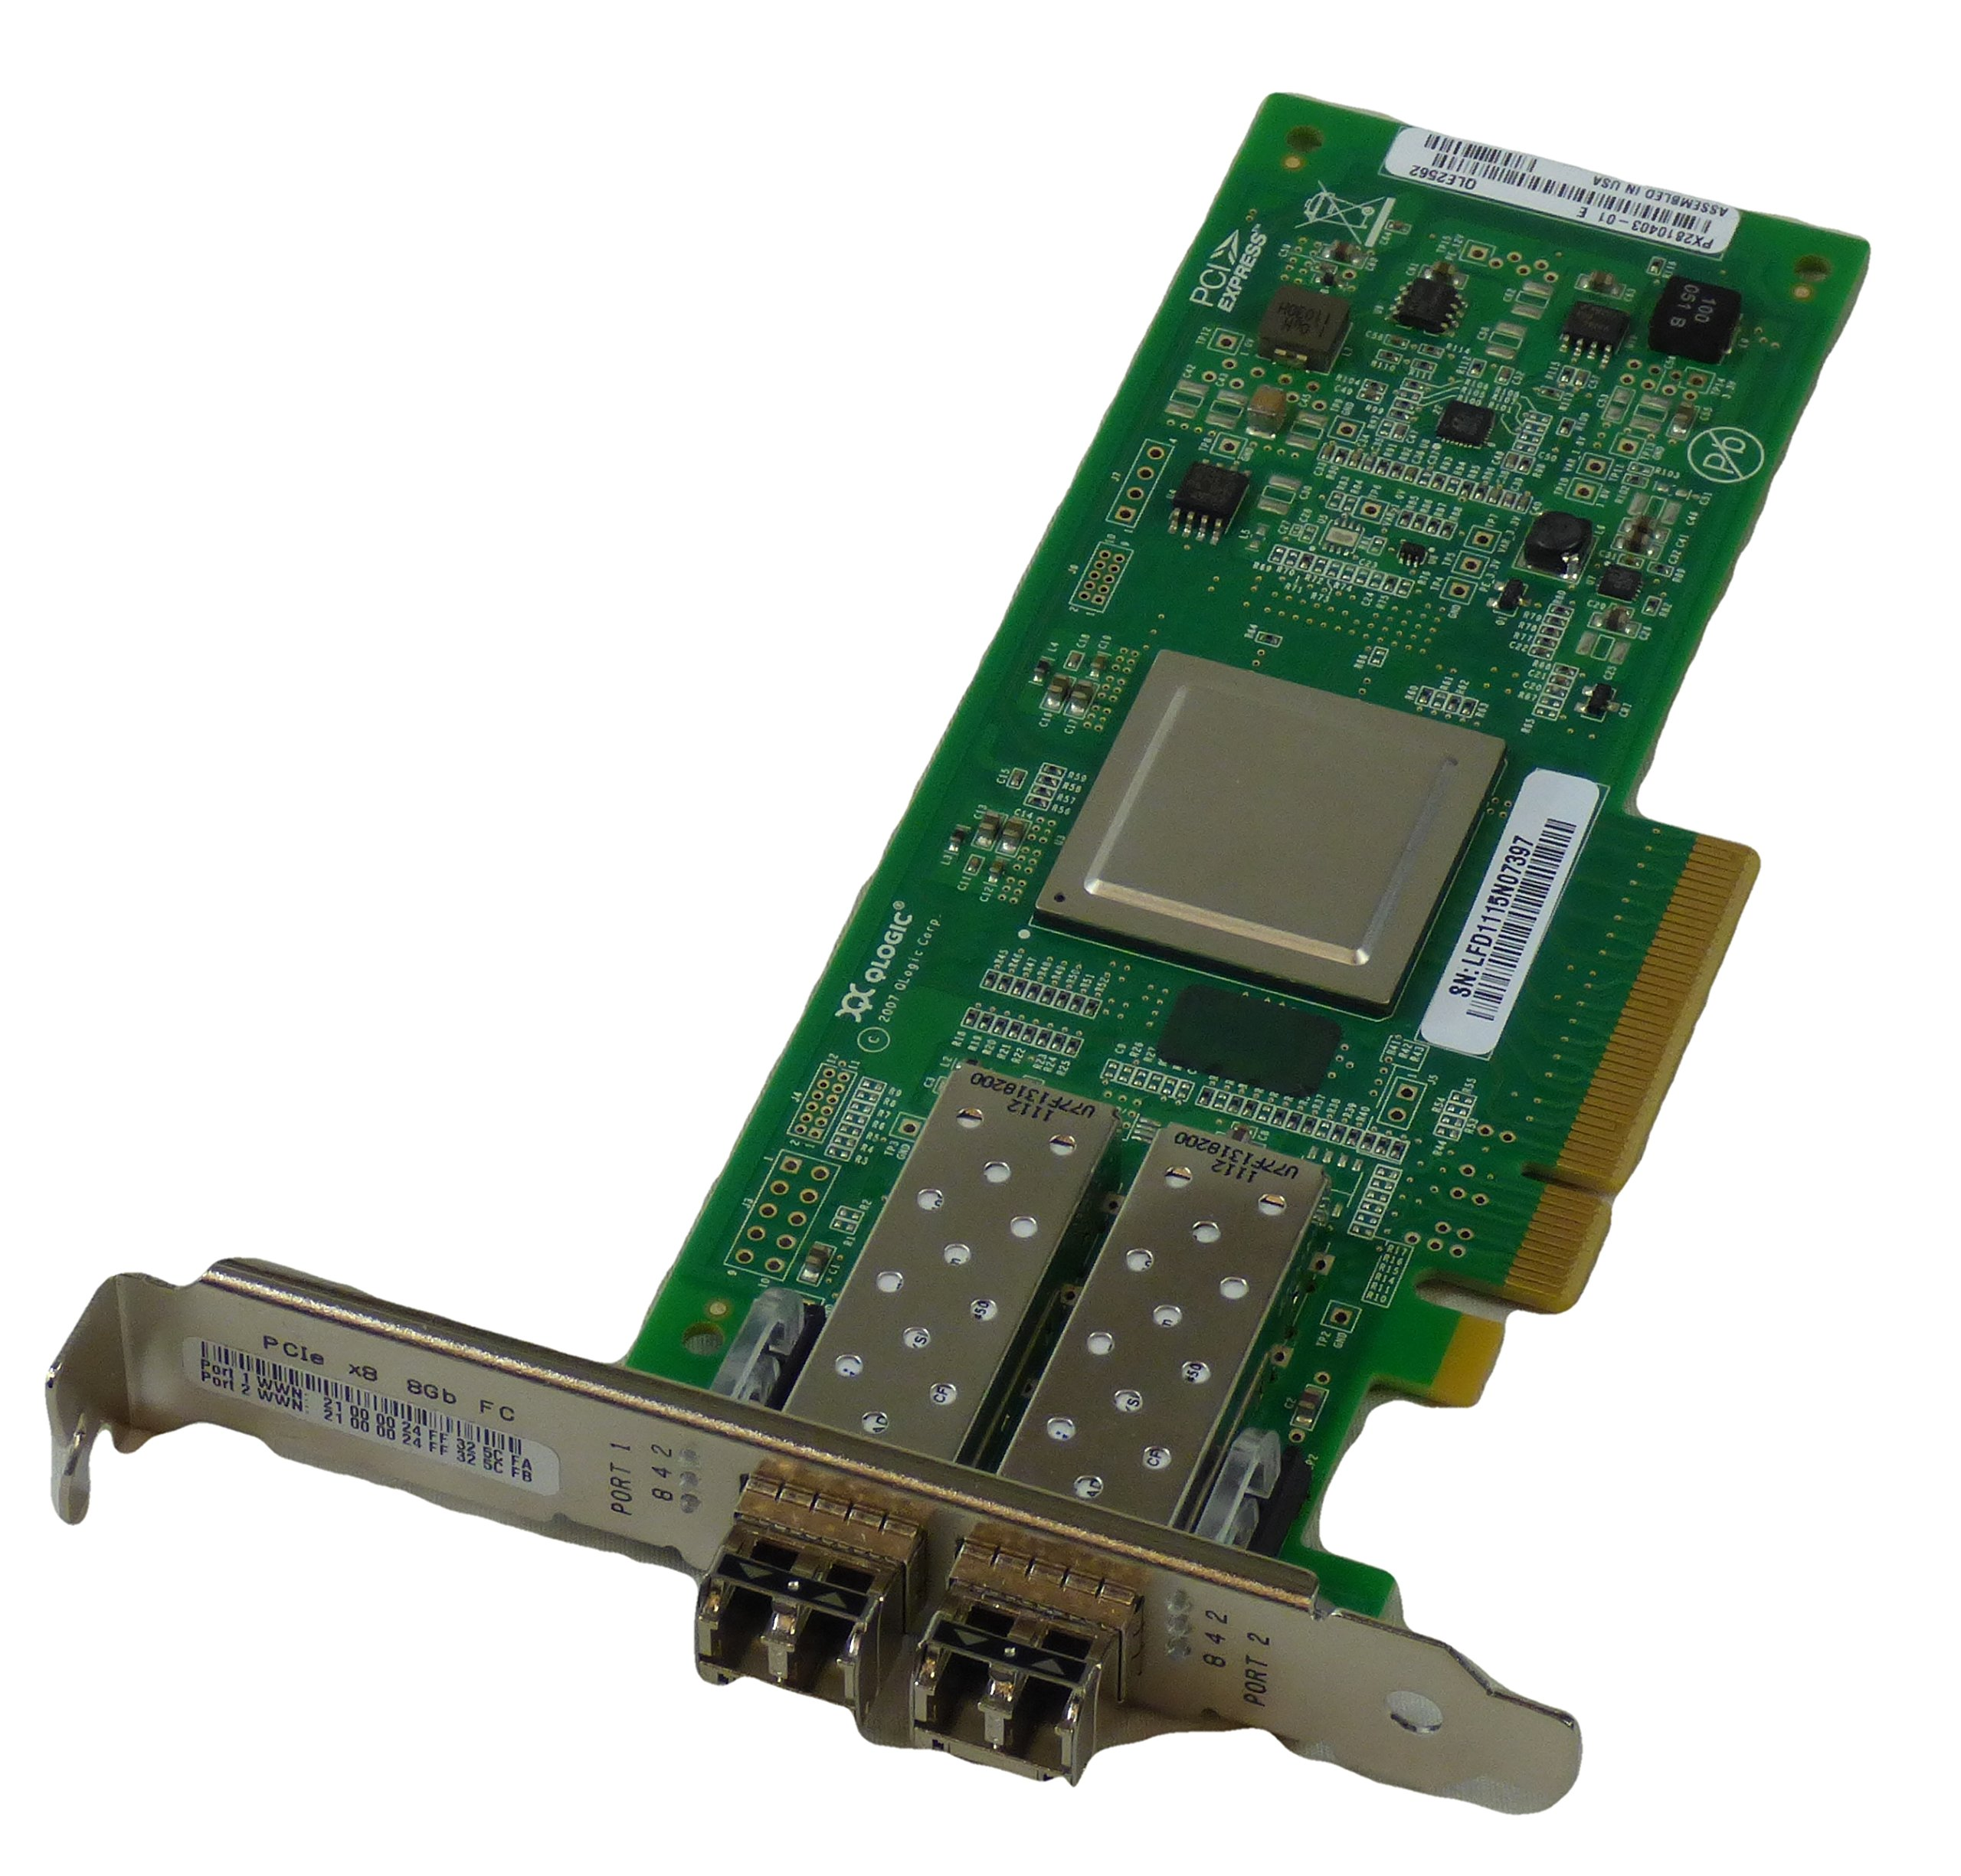 Qlogic QLE2562 8Gbp/s Dual Port Fibre Channel Host Bus Adapter PX2810403-01 by QLogic